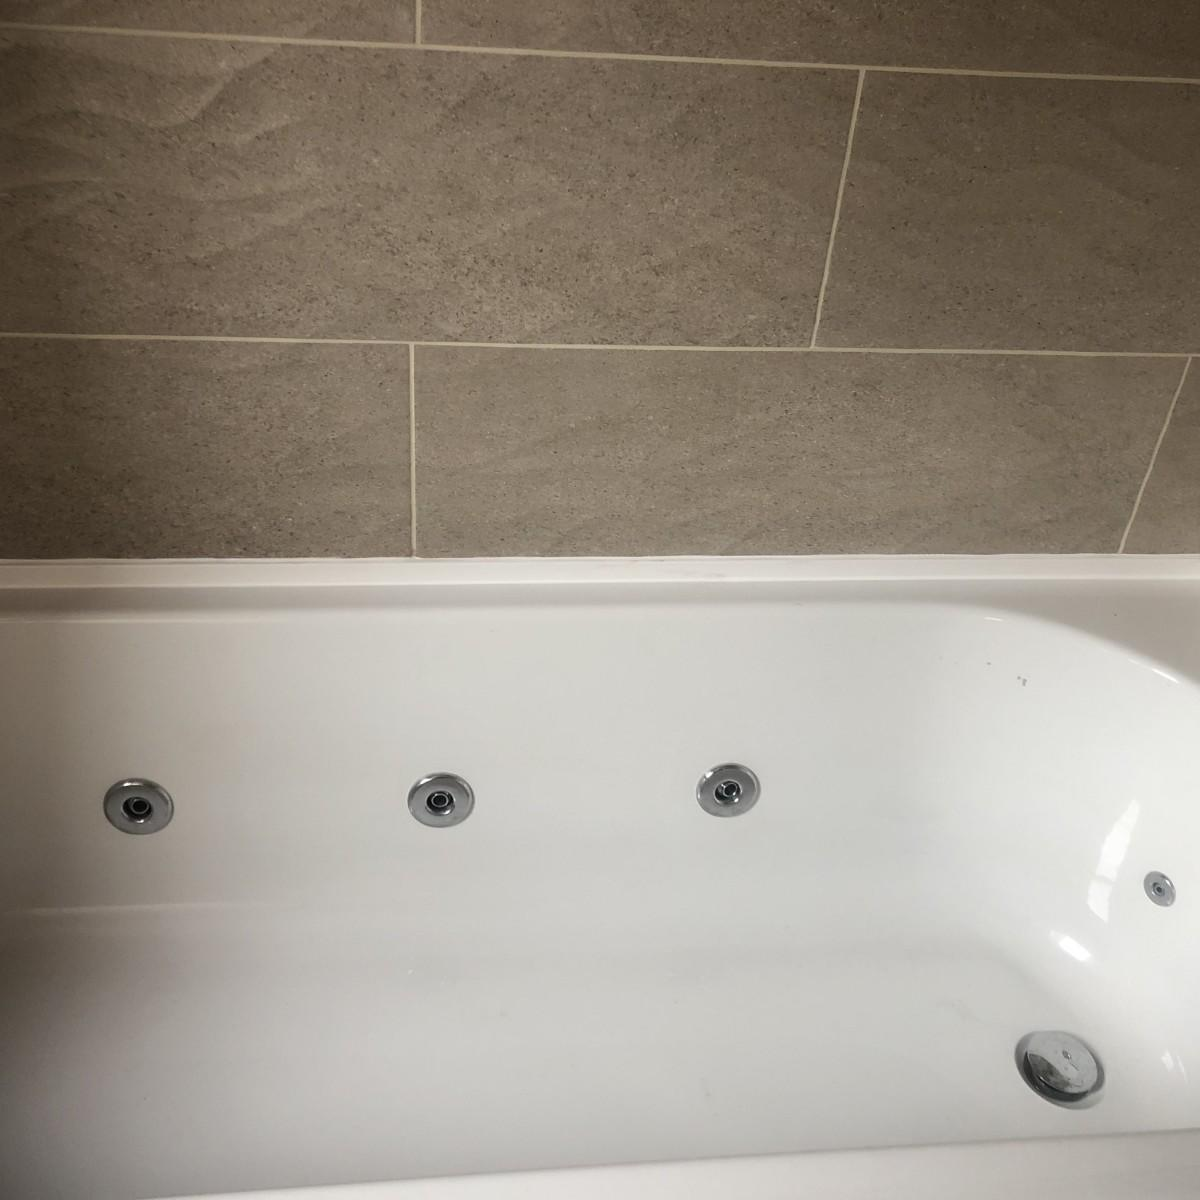 The Whirlpool Bath Shop Customer Reviews